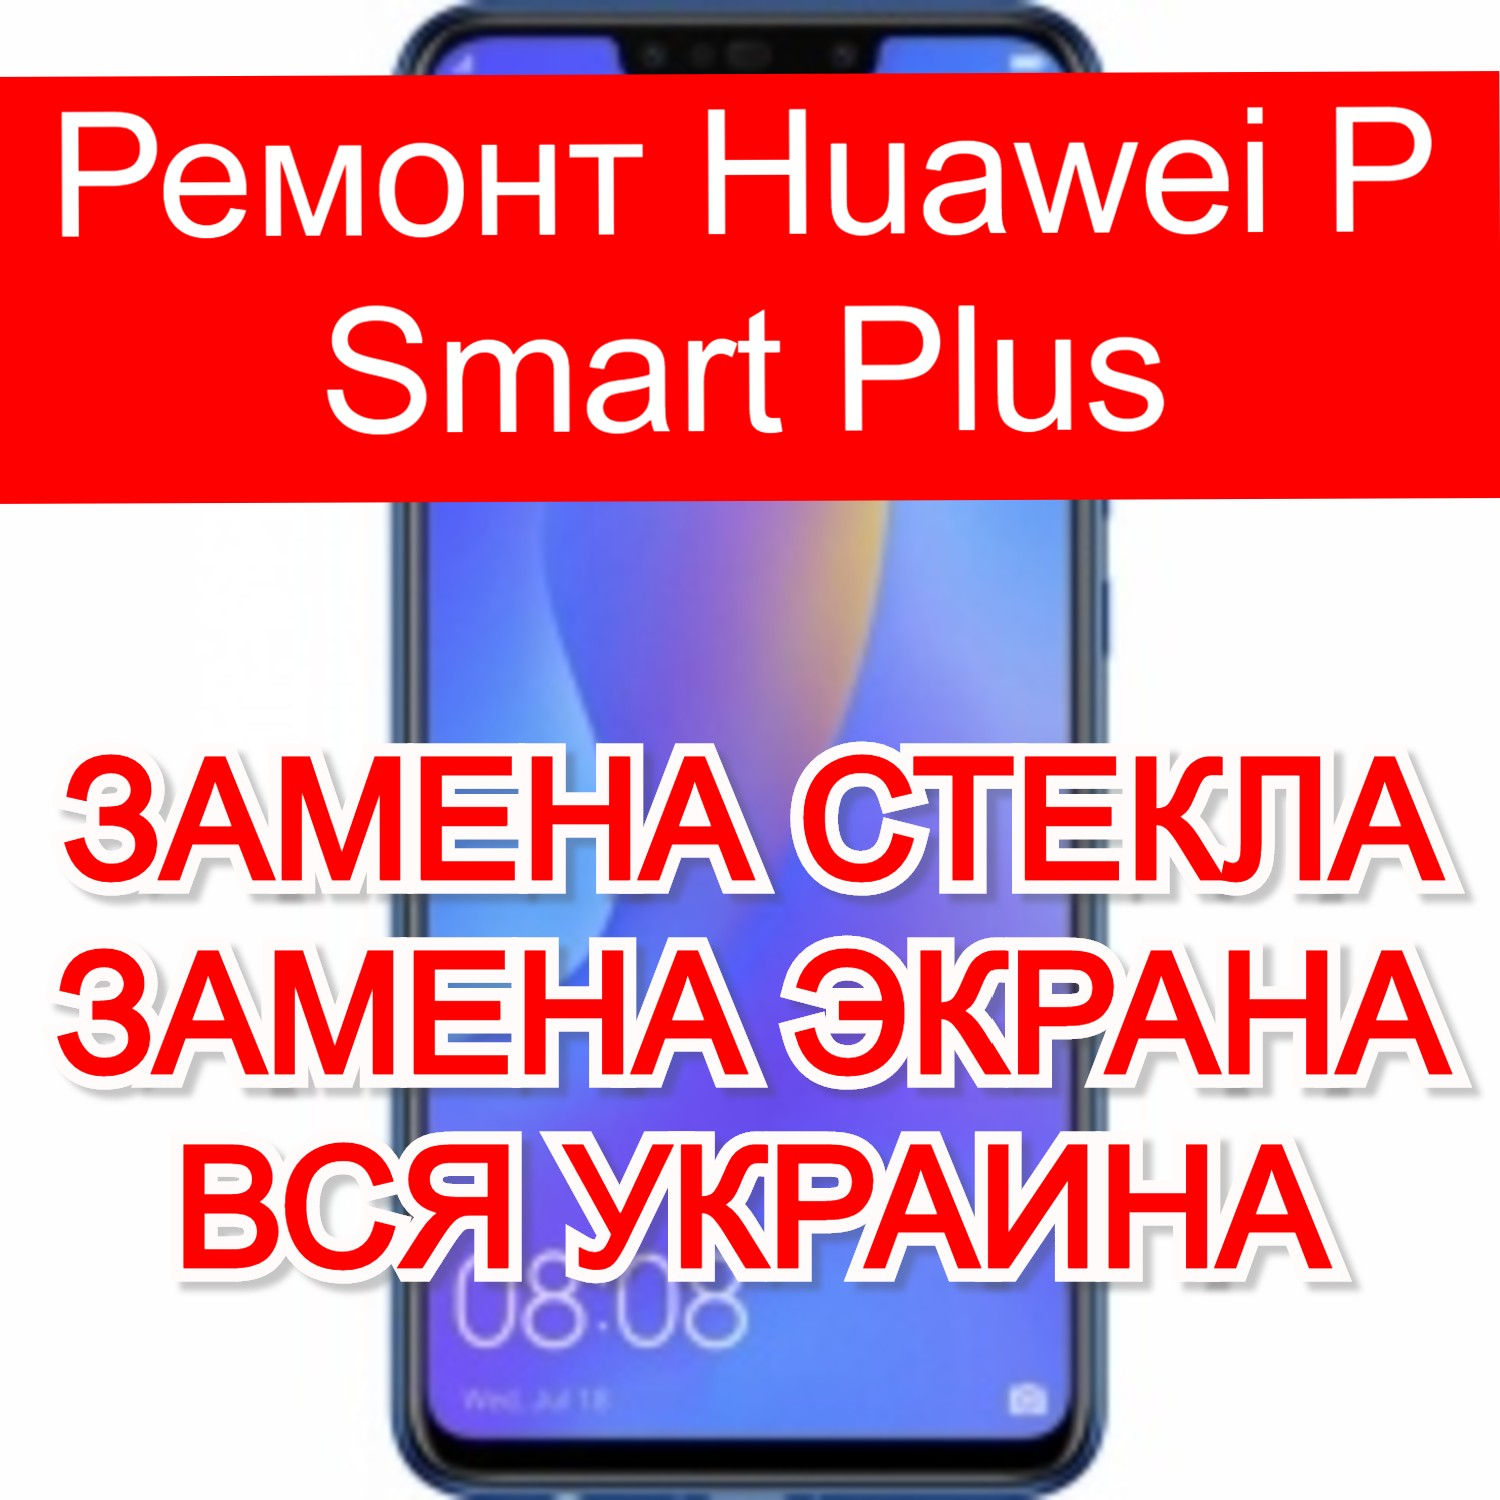 Ремонт Huawei P Smart Plus замена стекла и экрана